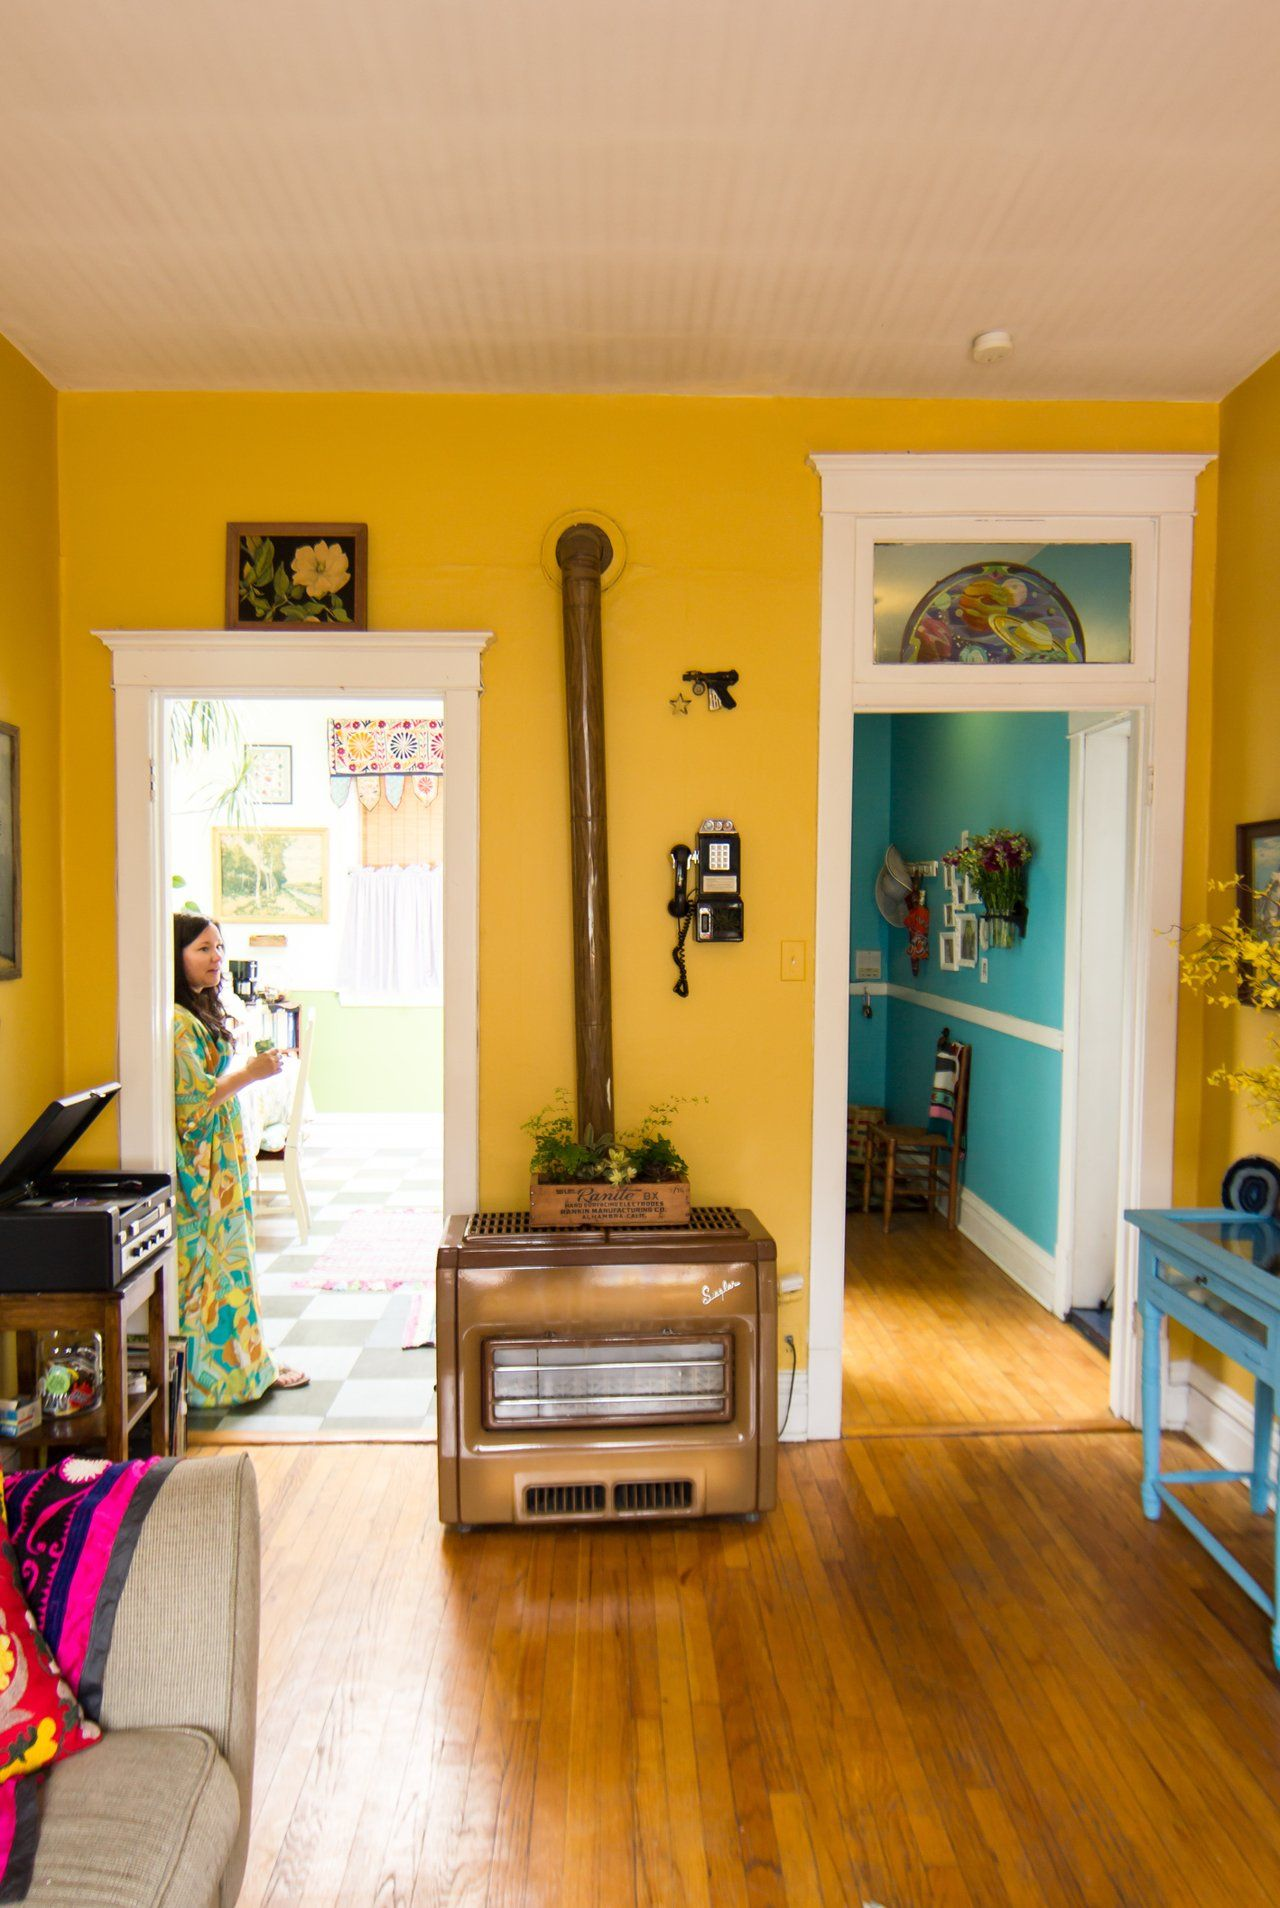 House Tour: A Chicago Home Bursting With Bold Colors | Small Spaces ...